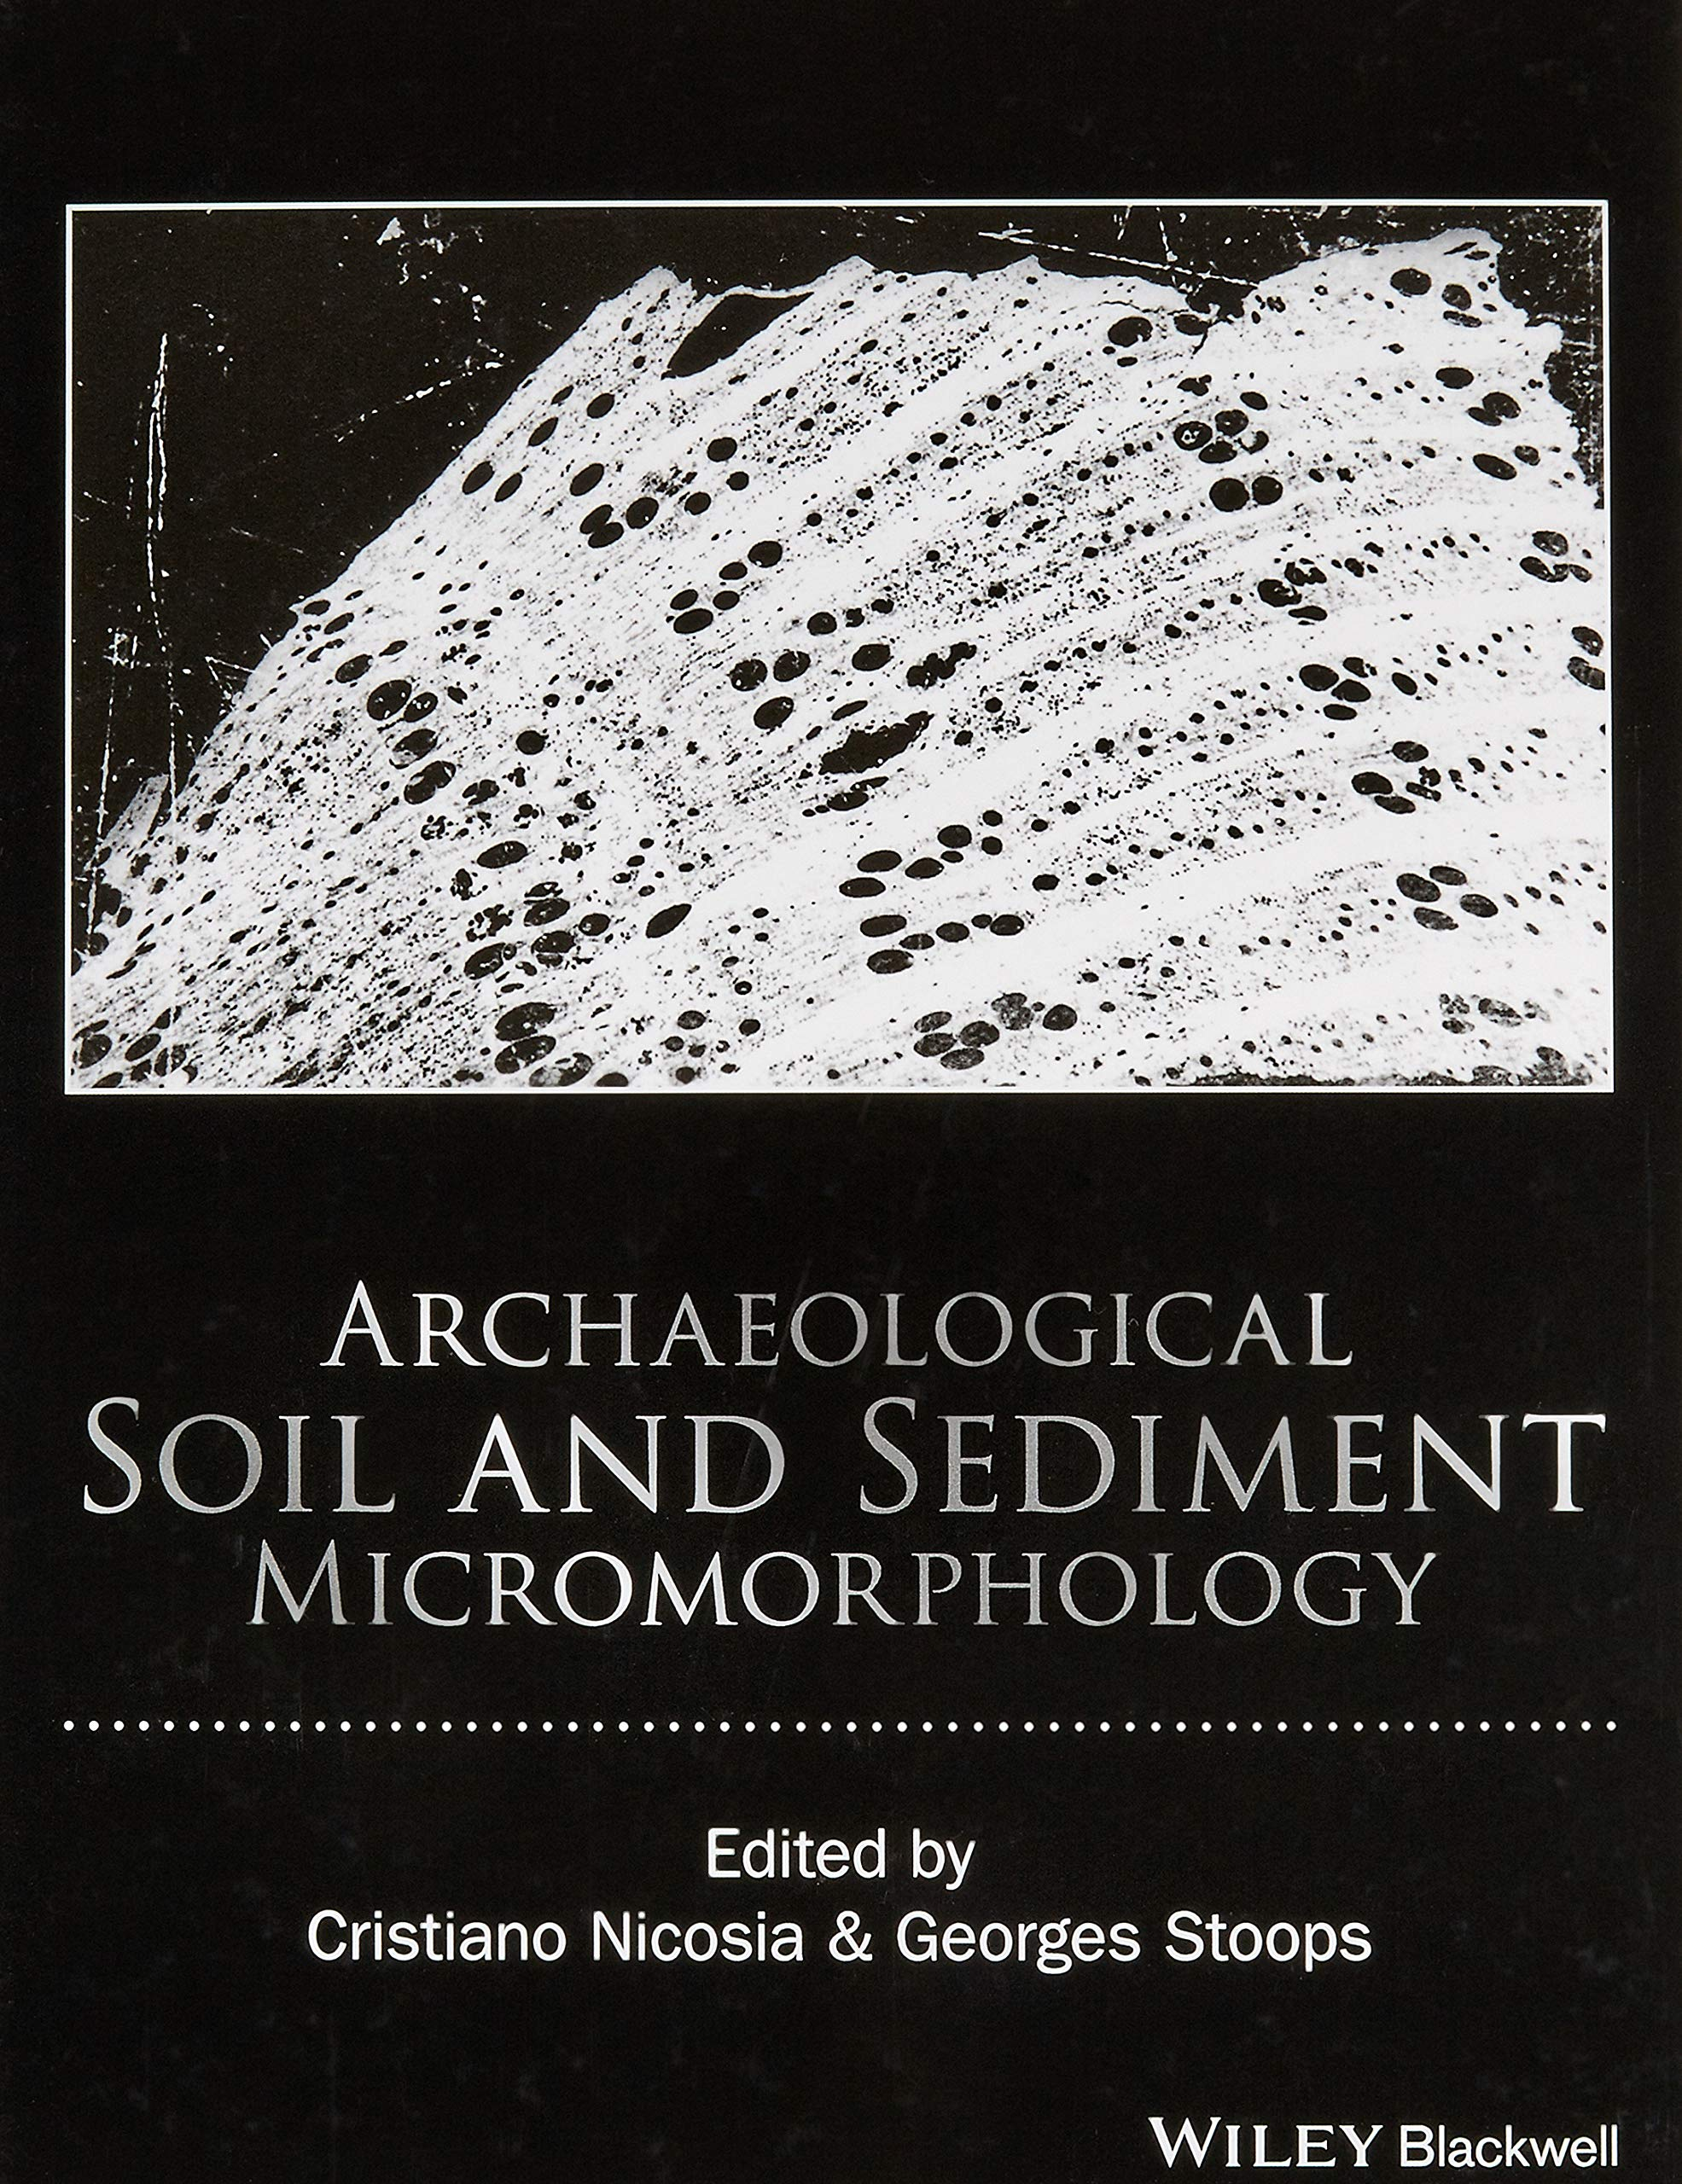 Download Archaeological Soil And Sediment Micromorphology 